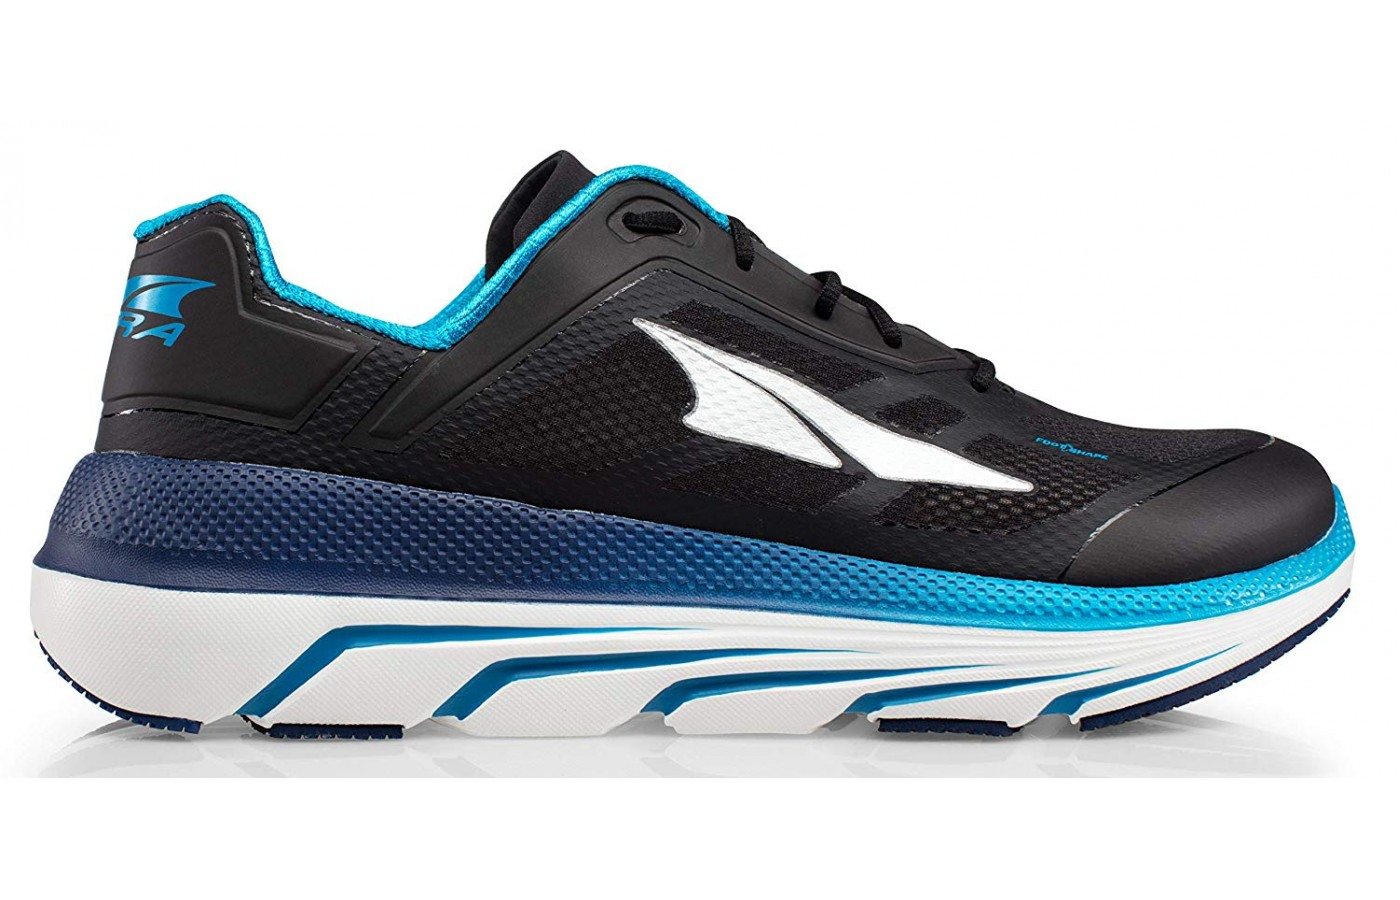 The upper of the running shoe is made of lightweight mesh.